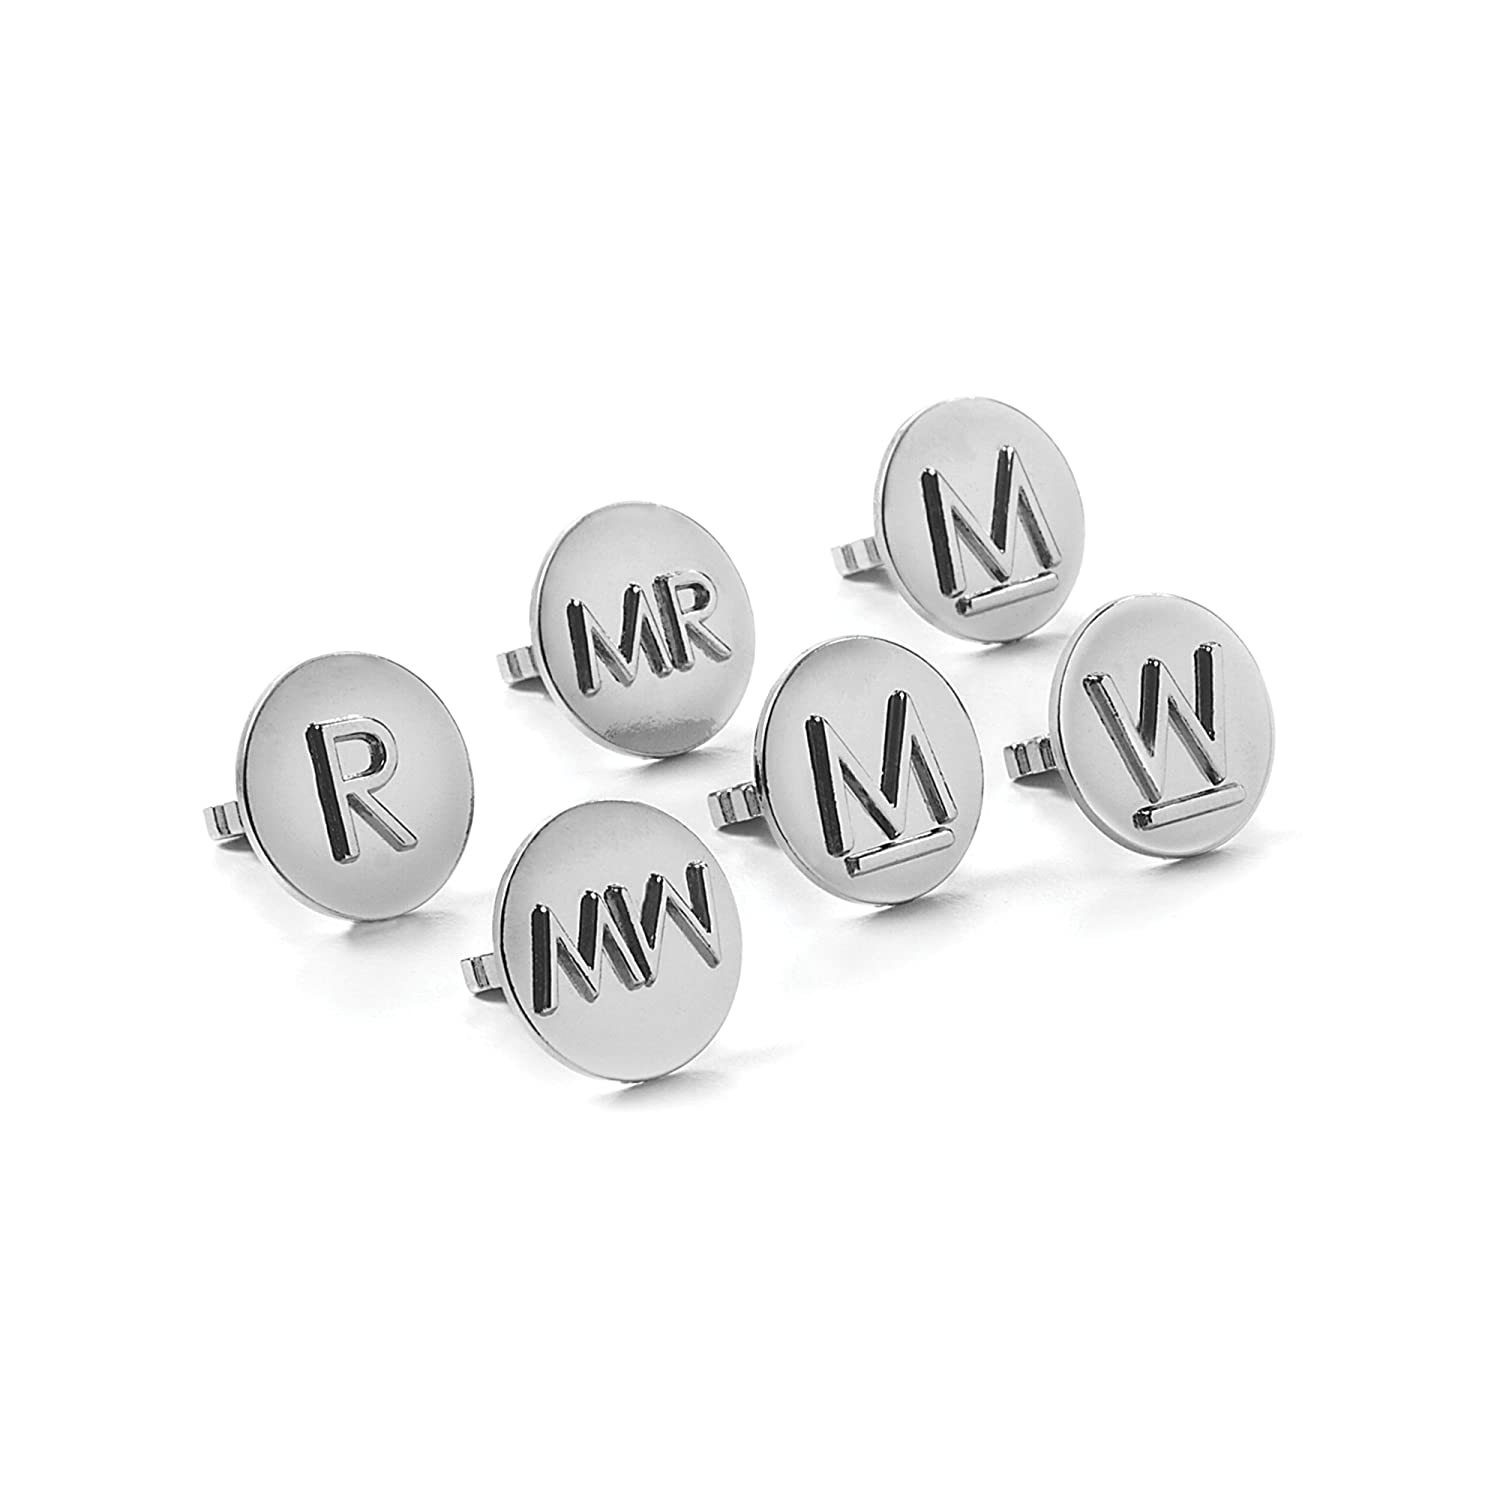 Outset GC105 Steak Collection Grill Charms, Set of 6 FOX RUN